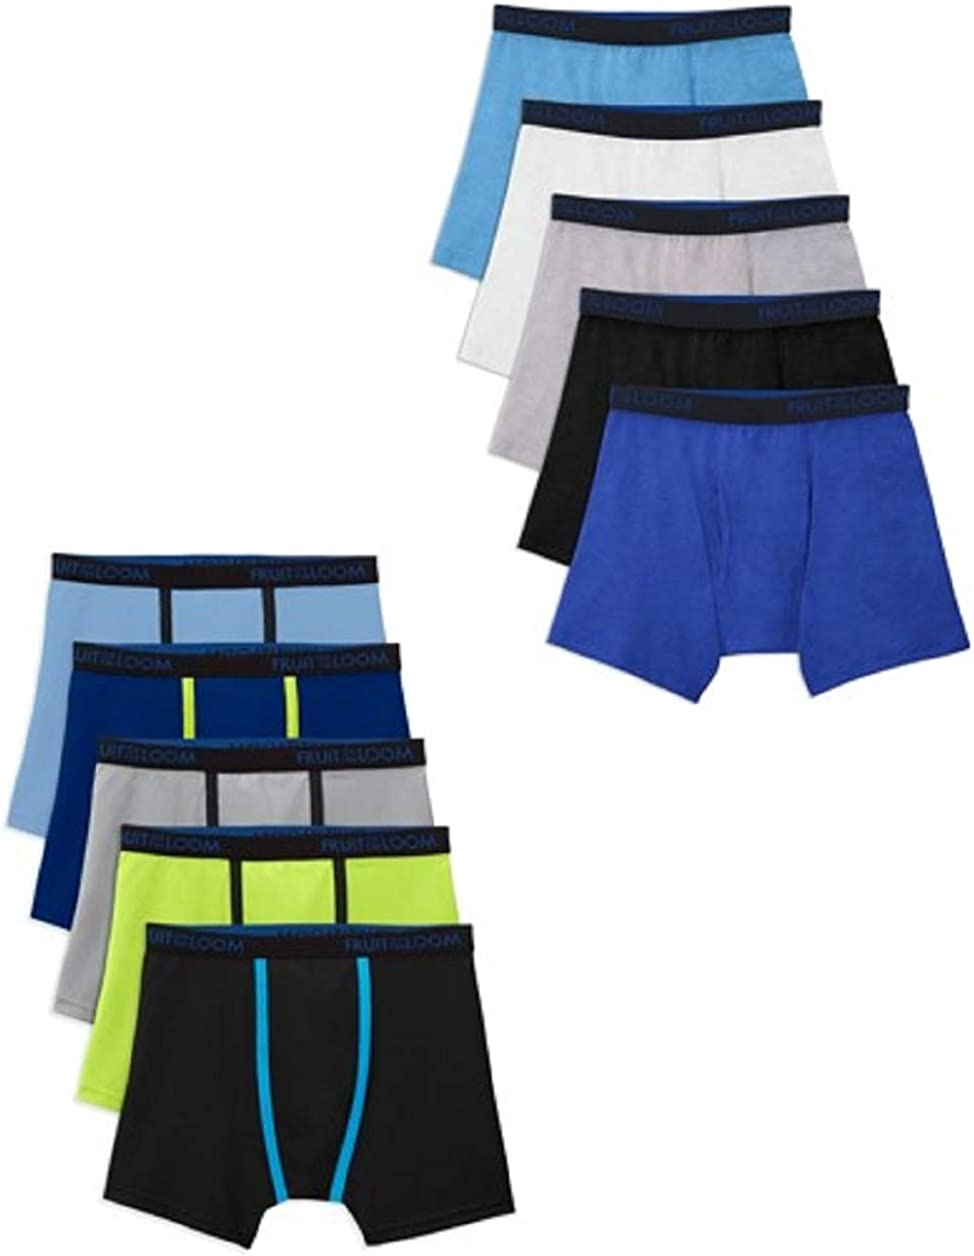 Fruit of the Loom Boys' Breathable Mesh Boxer Briefs